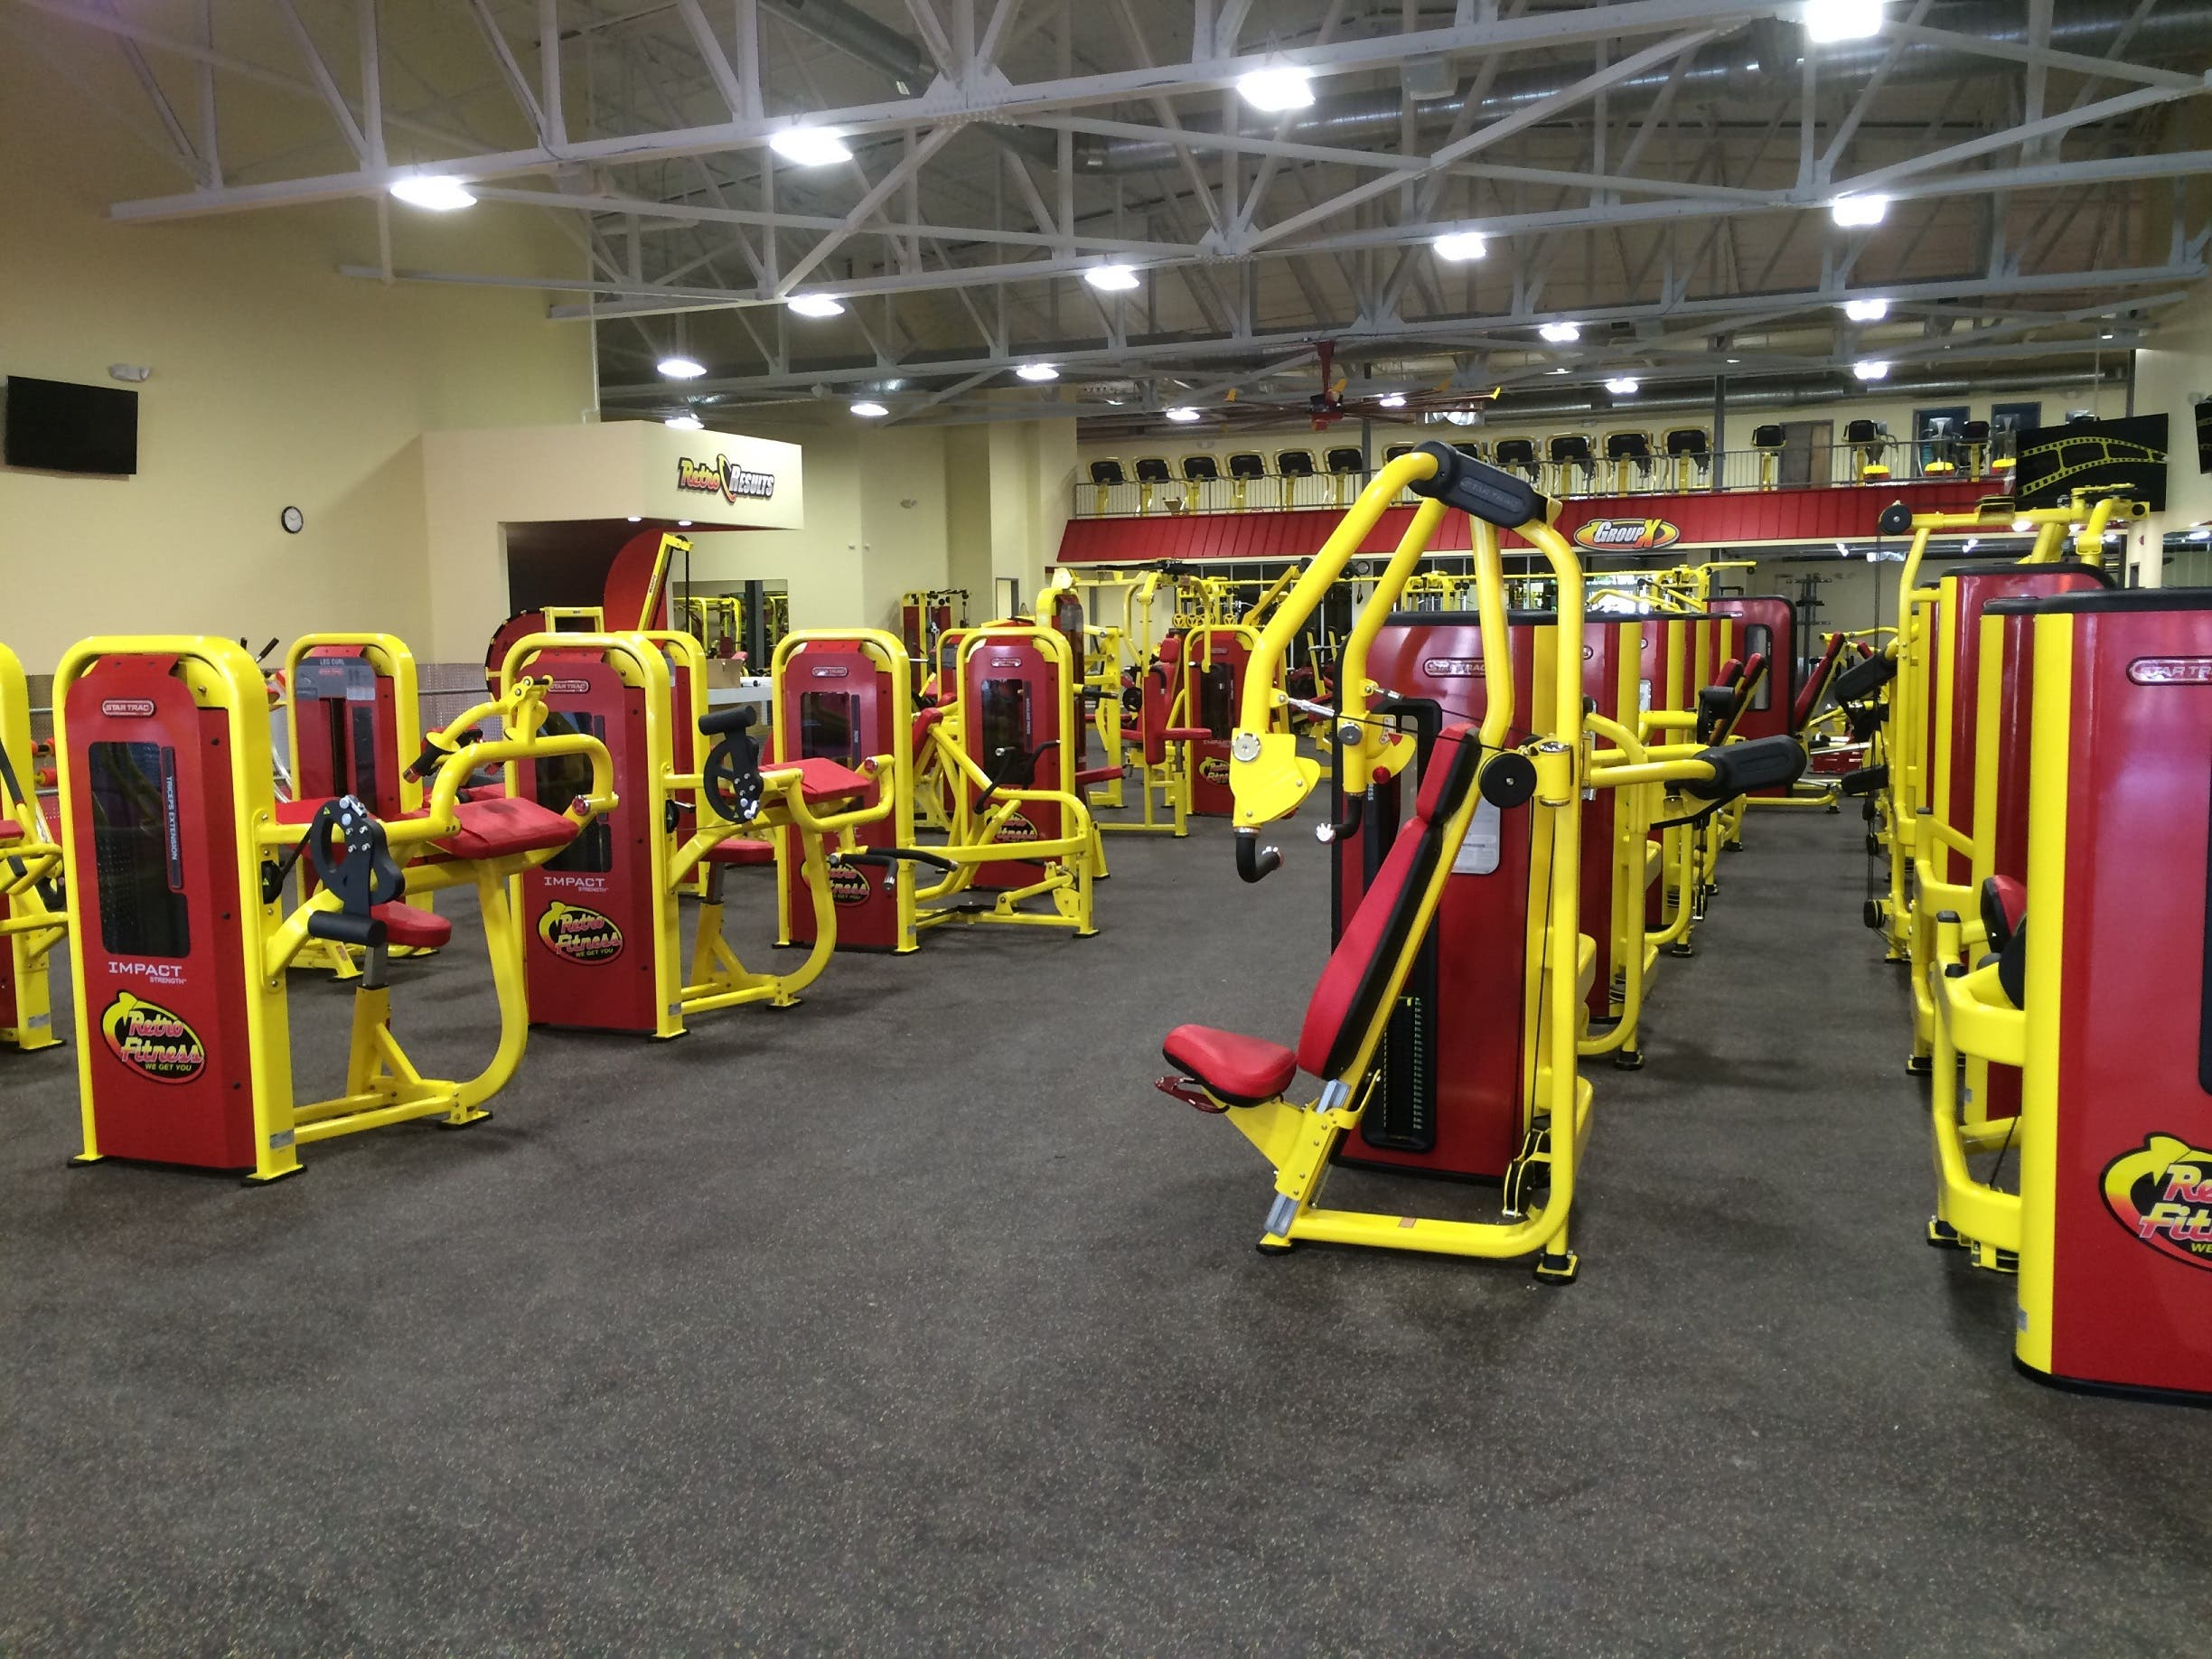 New Fitness Center With Great Value At An Affordable Price Opens In Pearl River Pearl River Ny Patch